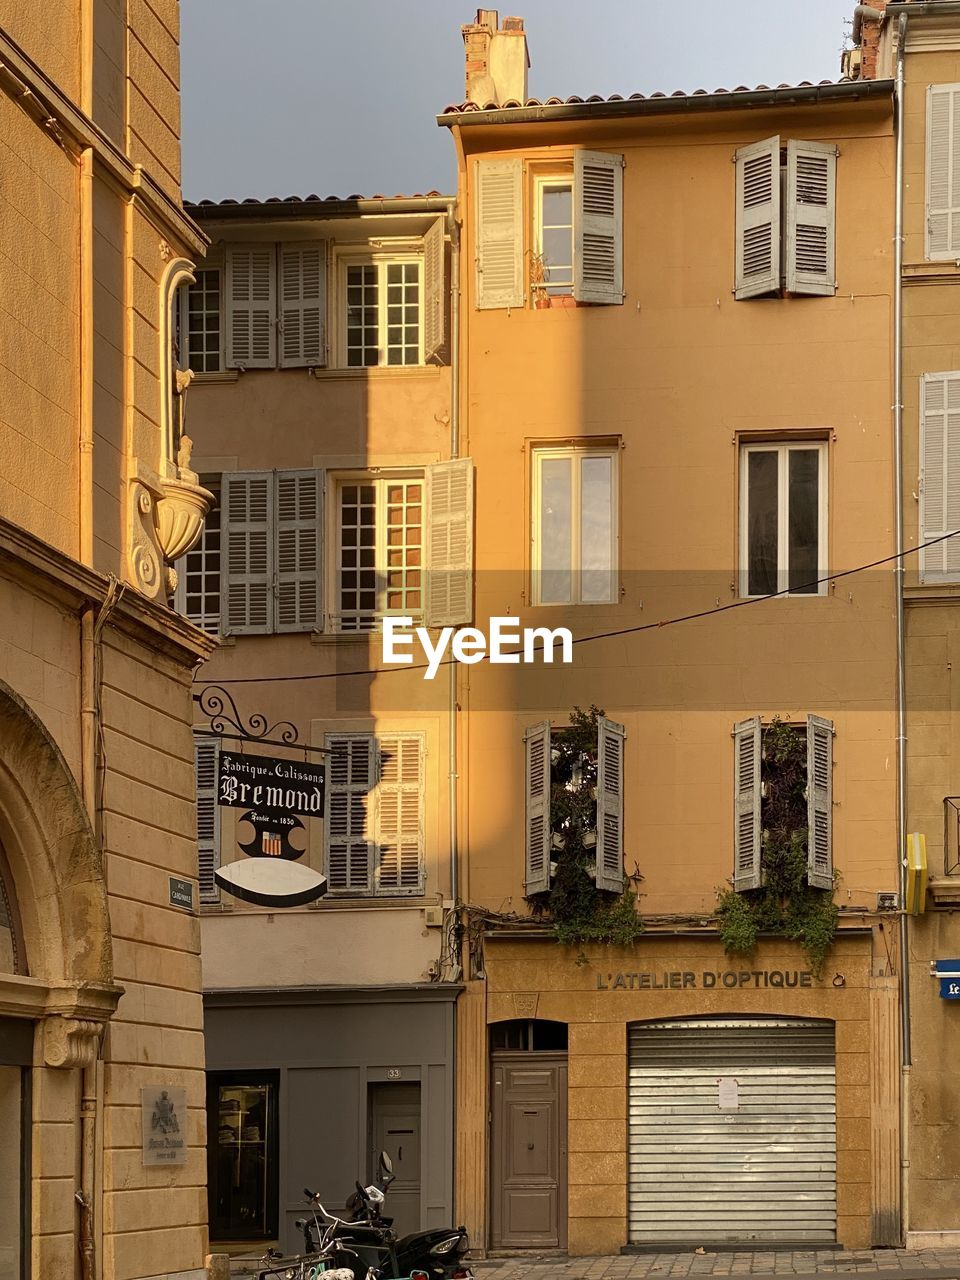 building exterior, architecture, built structure, window, building, city, residential district, day, no people, outdoors, sunlight, balcony, nature, street, communication, yellow, shadow, lighting equipment, city life, apartment